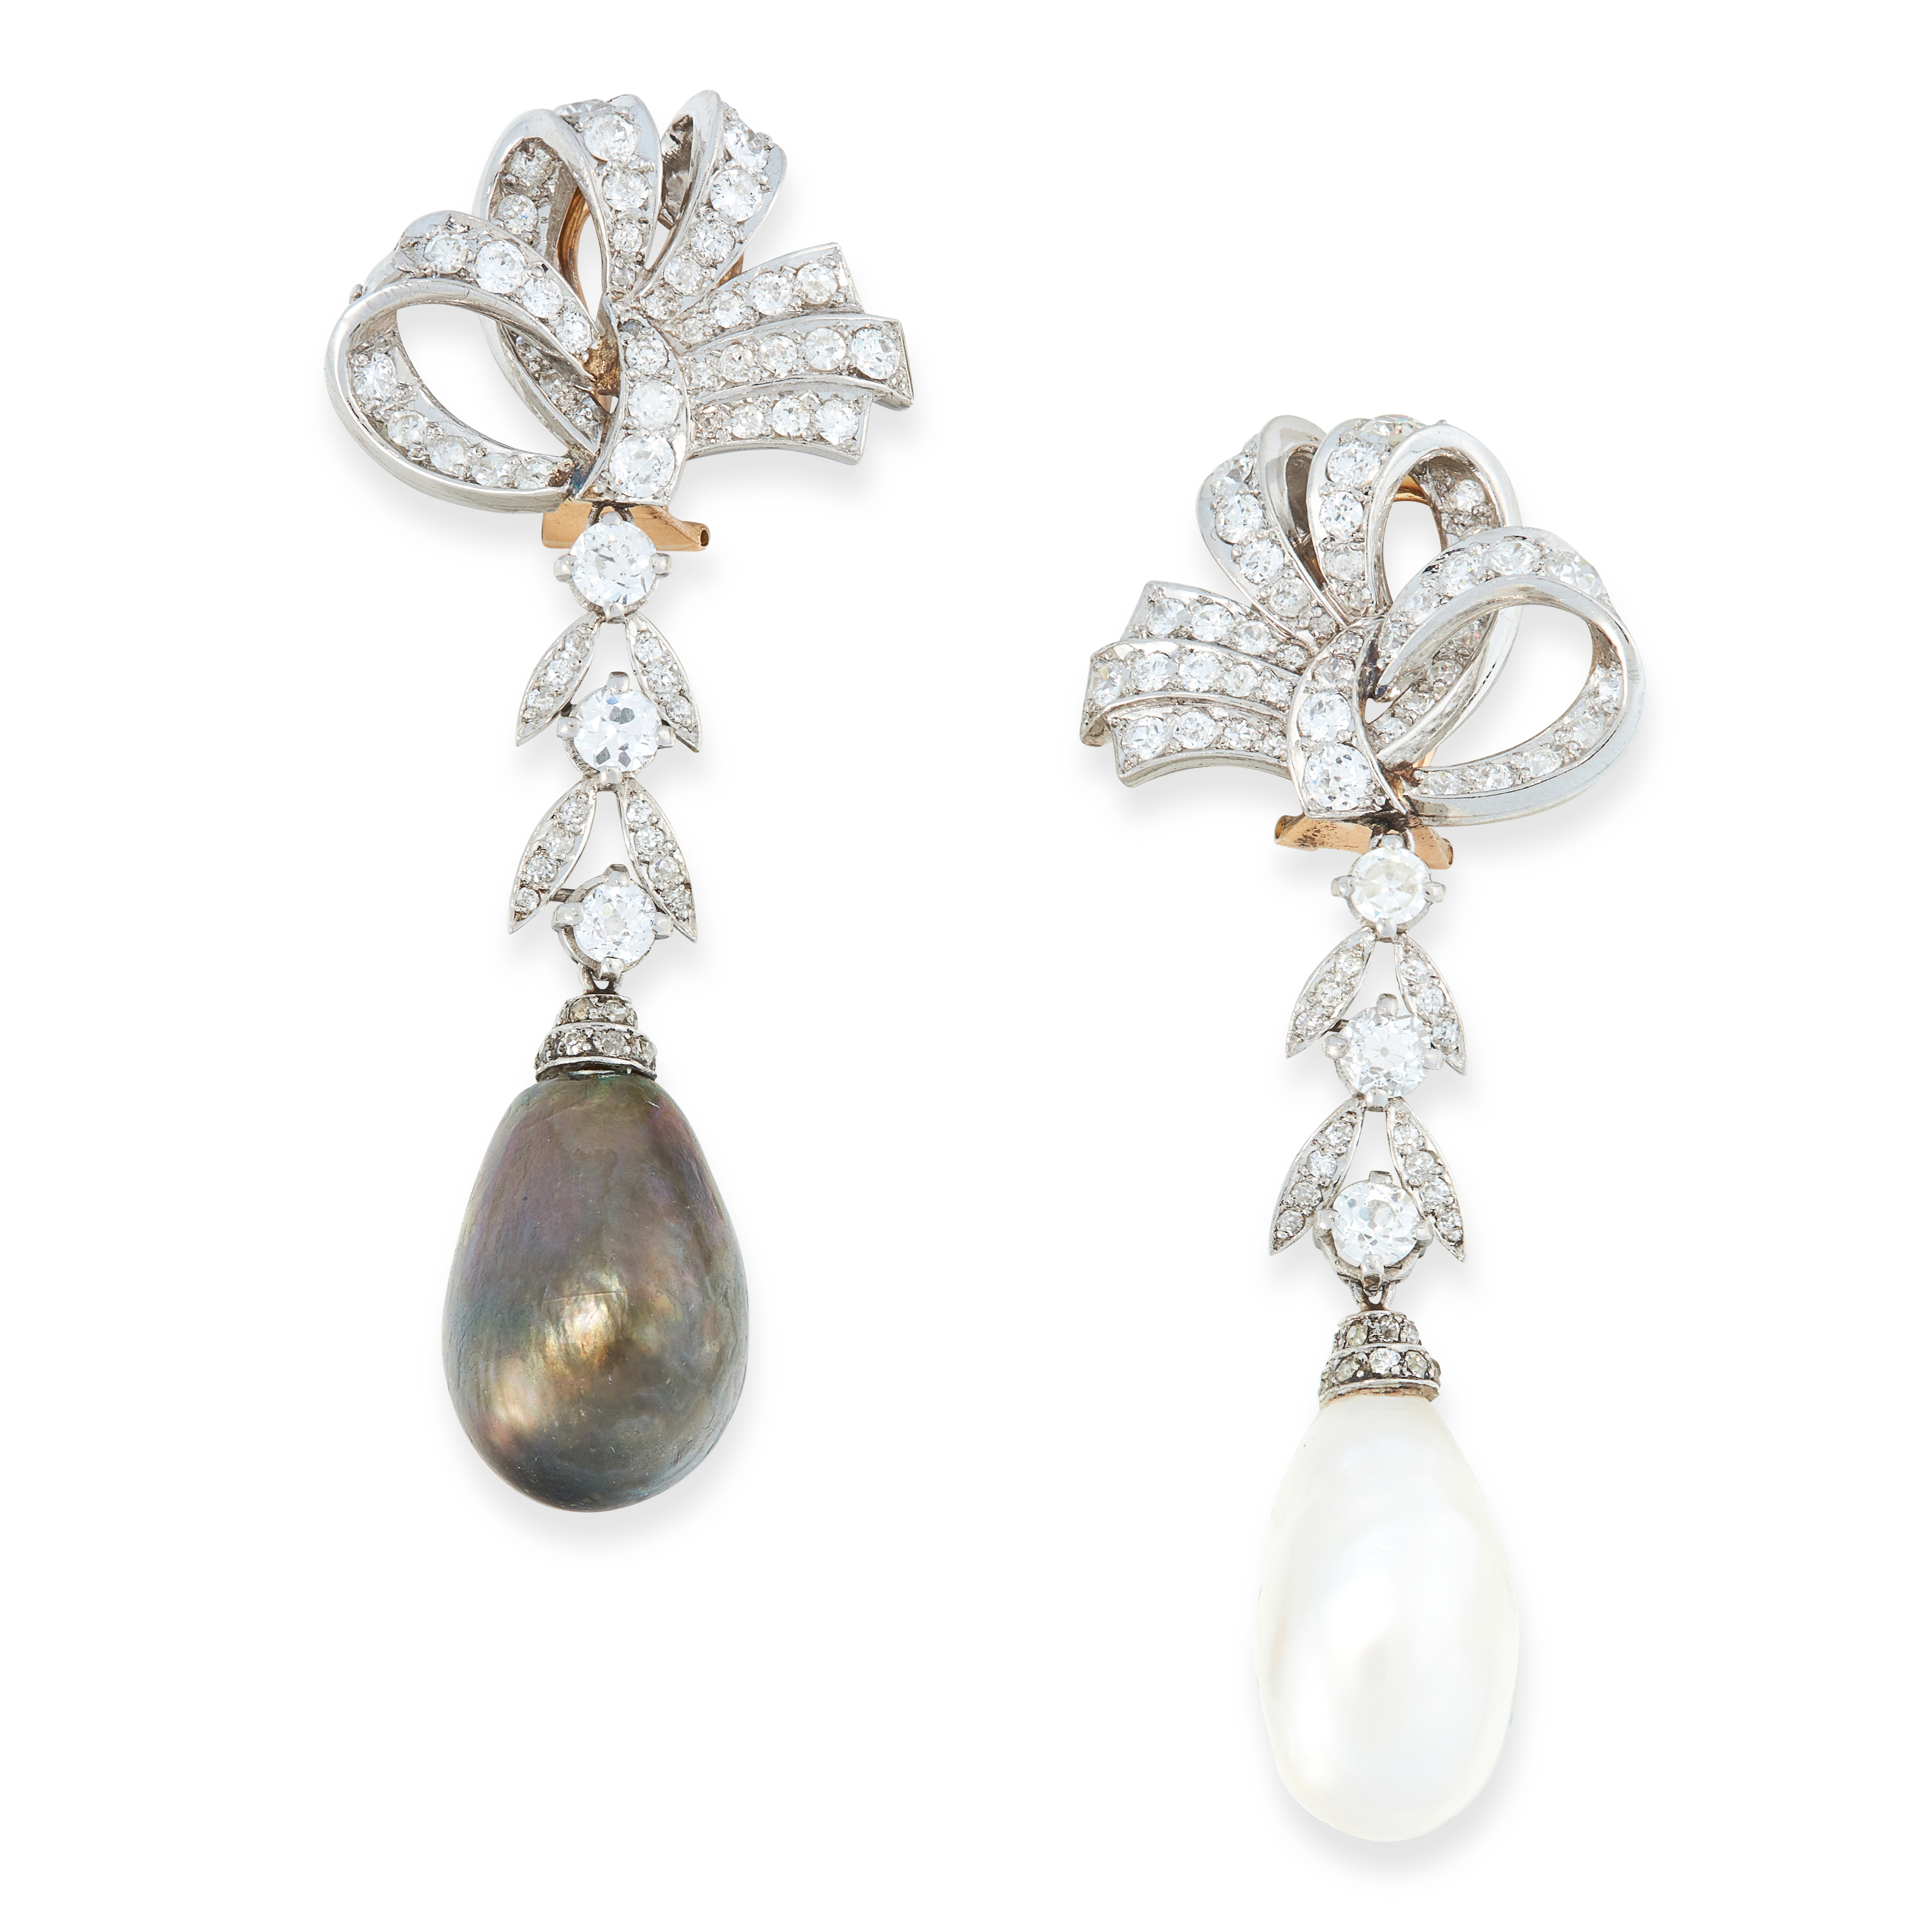 A PAIR OF PEARL AND DIAMOND EARRINGS composed of a ribbon scroll surmount, to articulated foliate